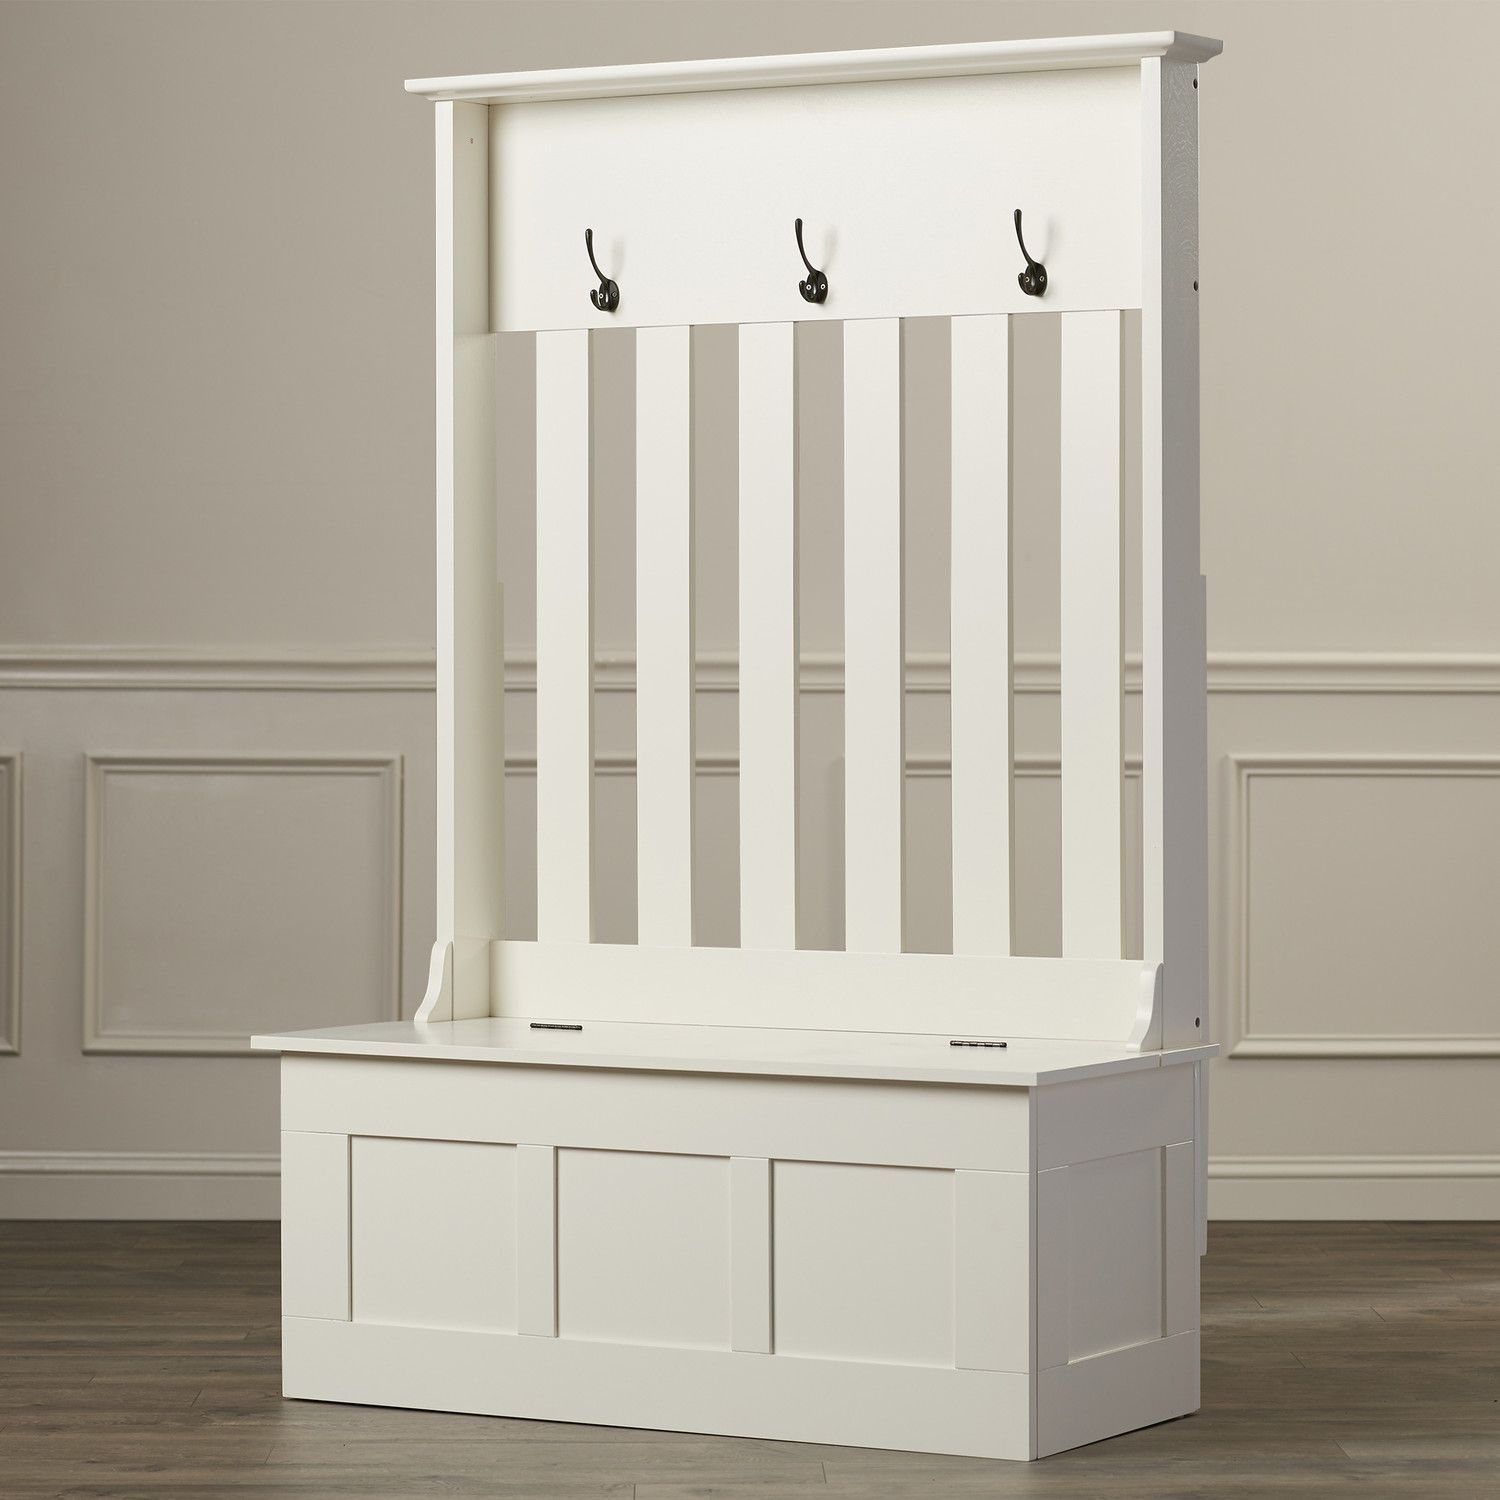 Hallway storage furniture  Narrow Hallway Storage Bench For Small Image Of With Seat toe nail